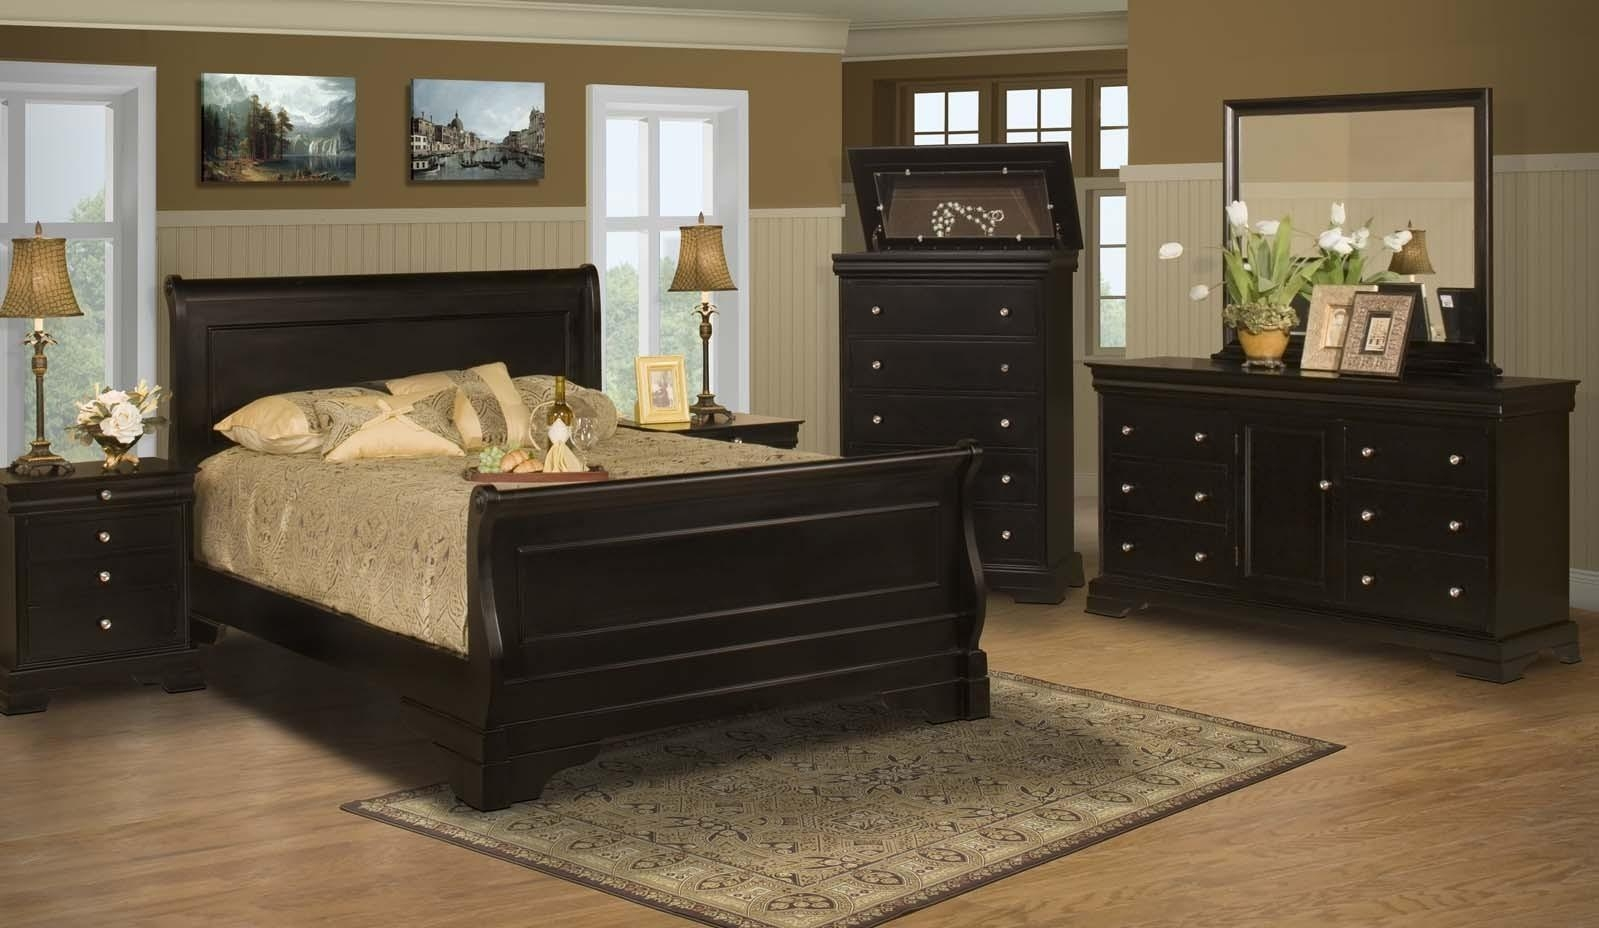 Stratford Black Cherry Queen Bedroom 4Pc Set For $ (Image 11 of 20)